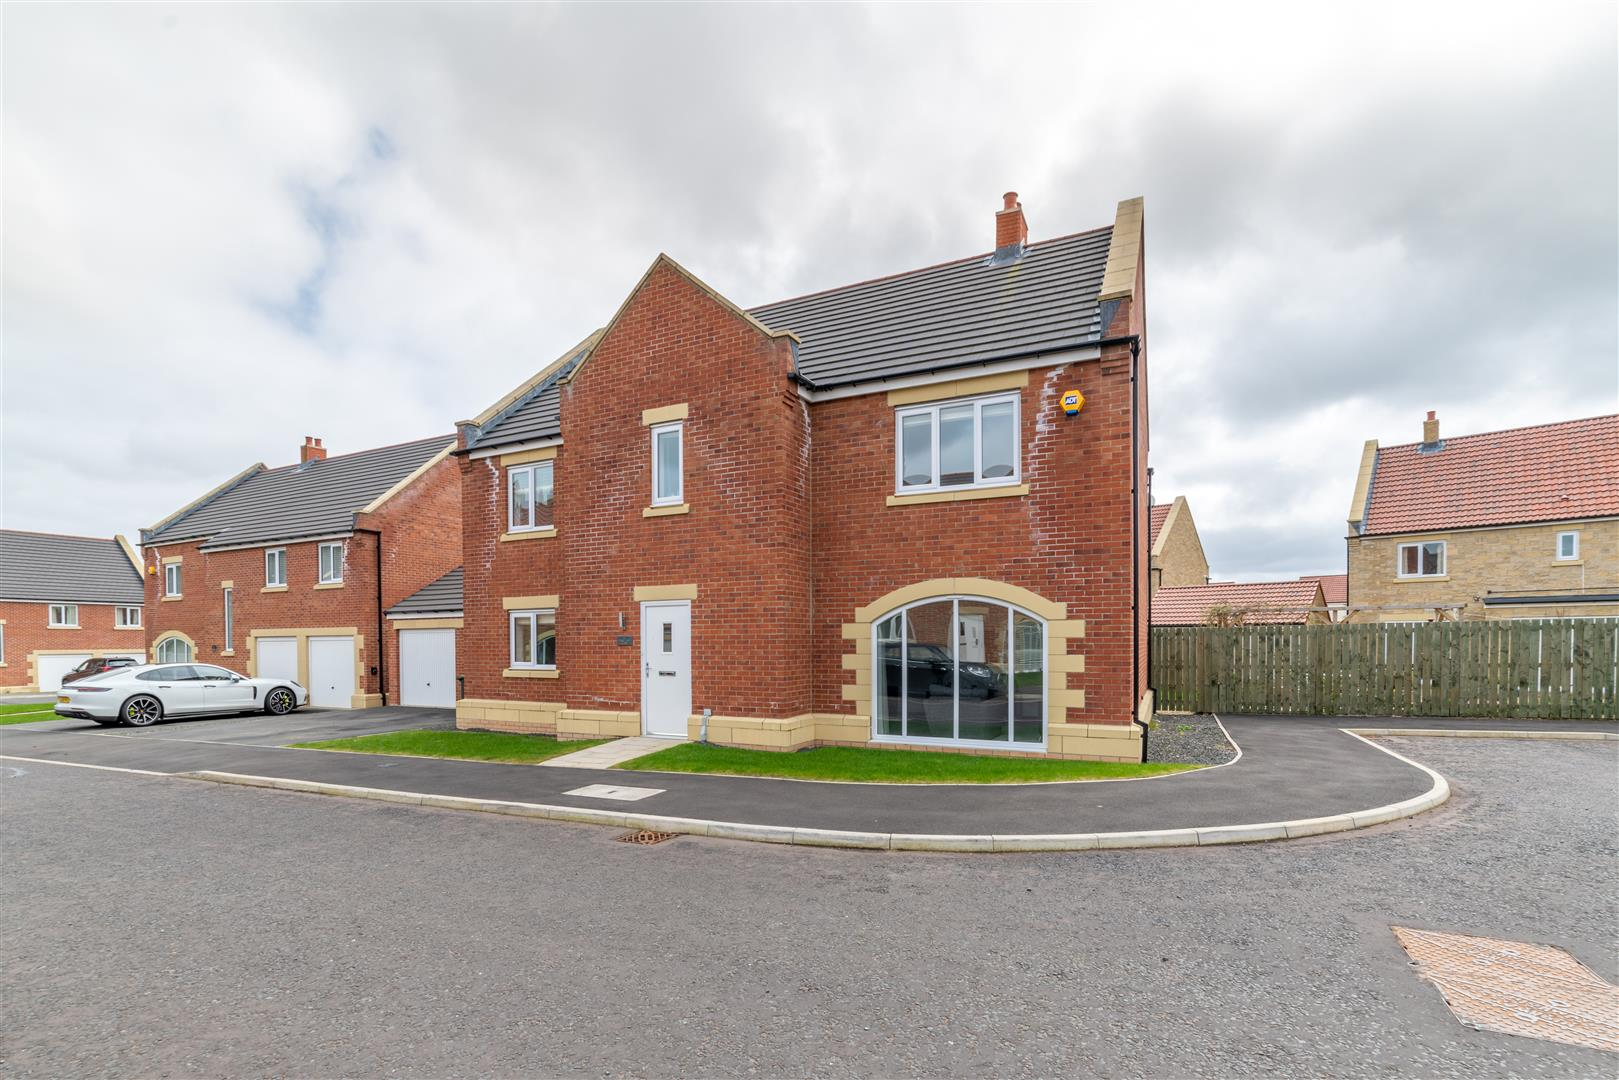 4 bed detached house for sale in Tree Top Close, Five Mile Park, NE13